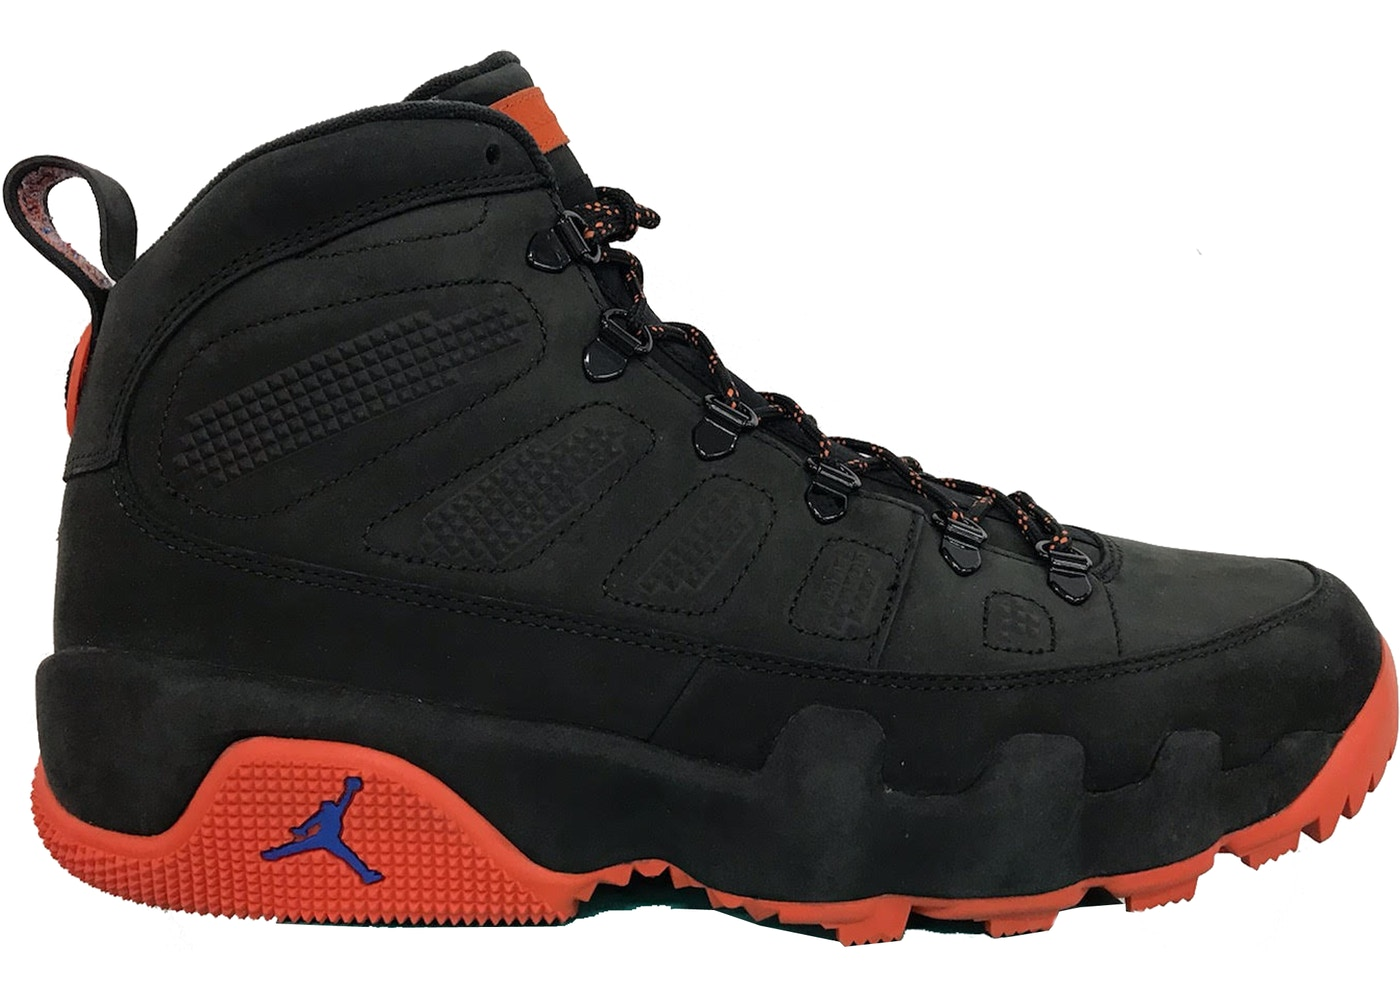 outlet store 78ed1 95307 Air Jordan 9 Shoes - Release Date